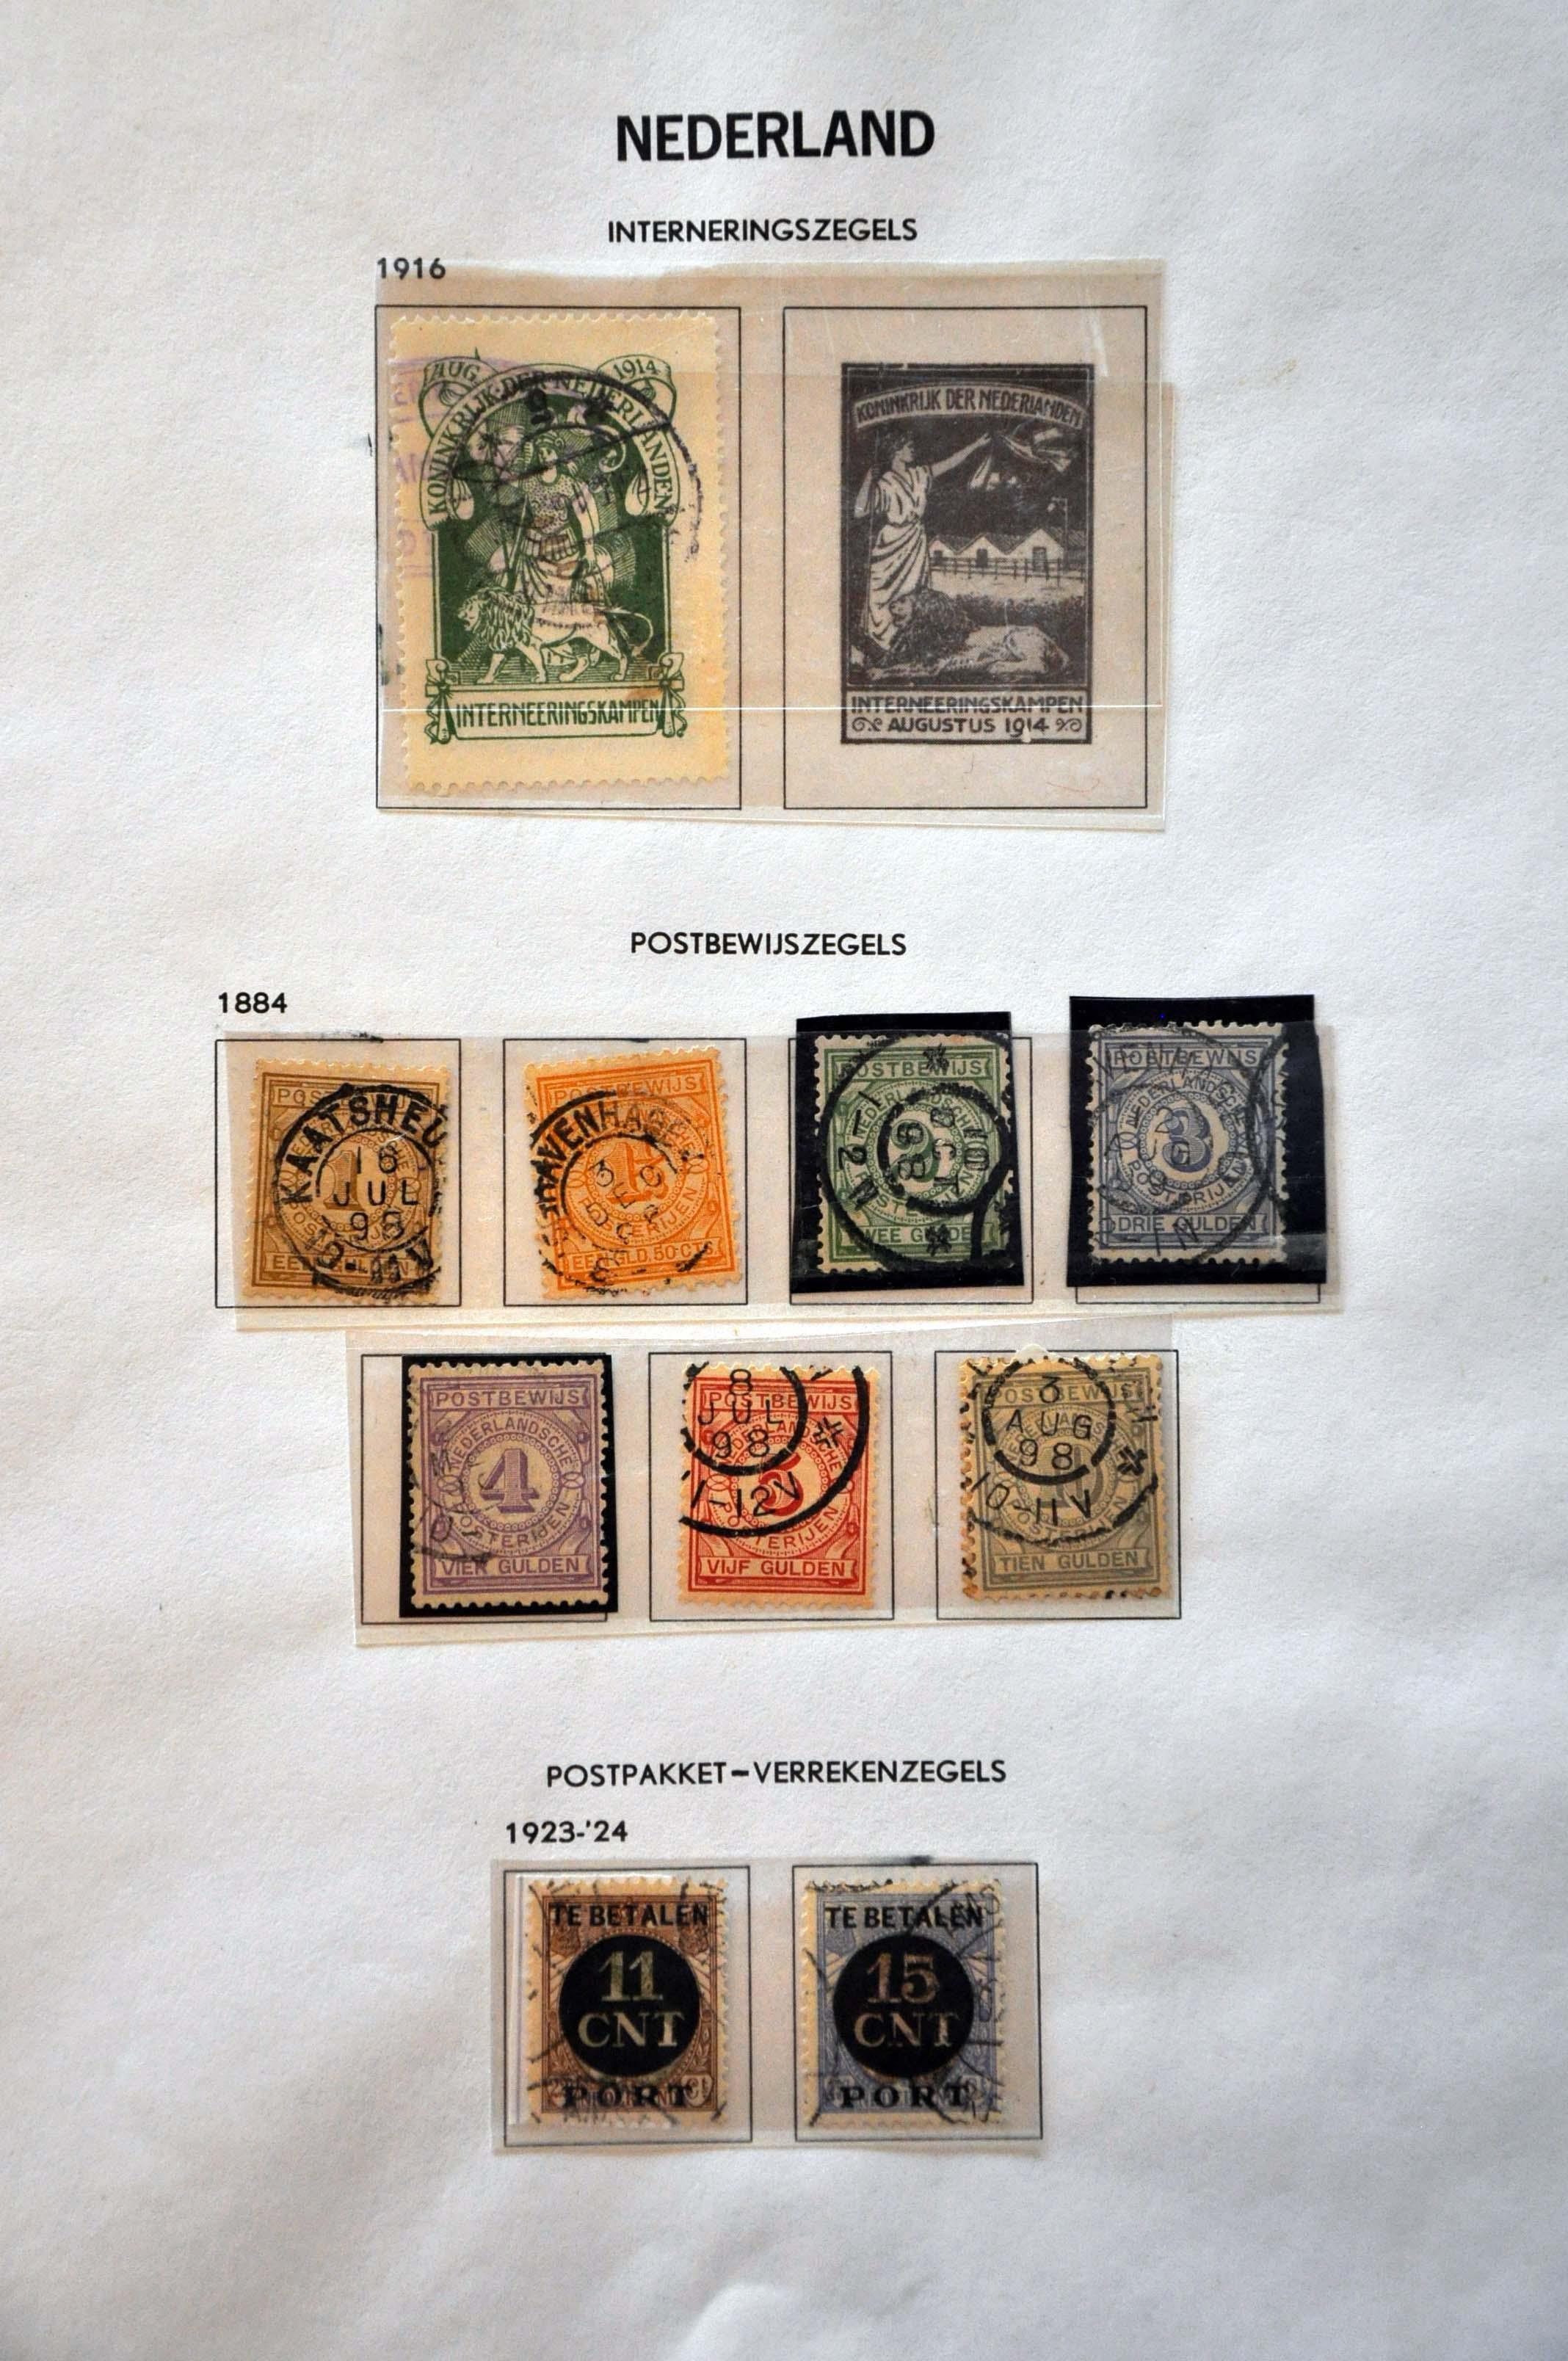 Lot 1627 - Netherlands and former colonies Netherlands -  Corinphila Veilingen Auction 250-253 - Day 2 - Coins, medals, Netherlands and former colonies